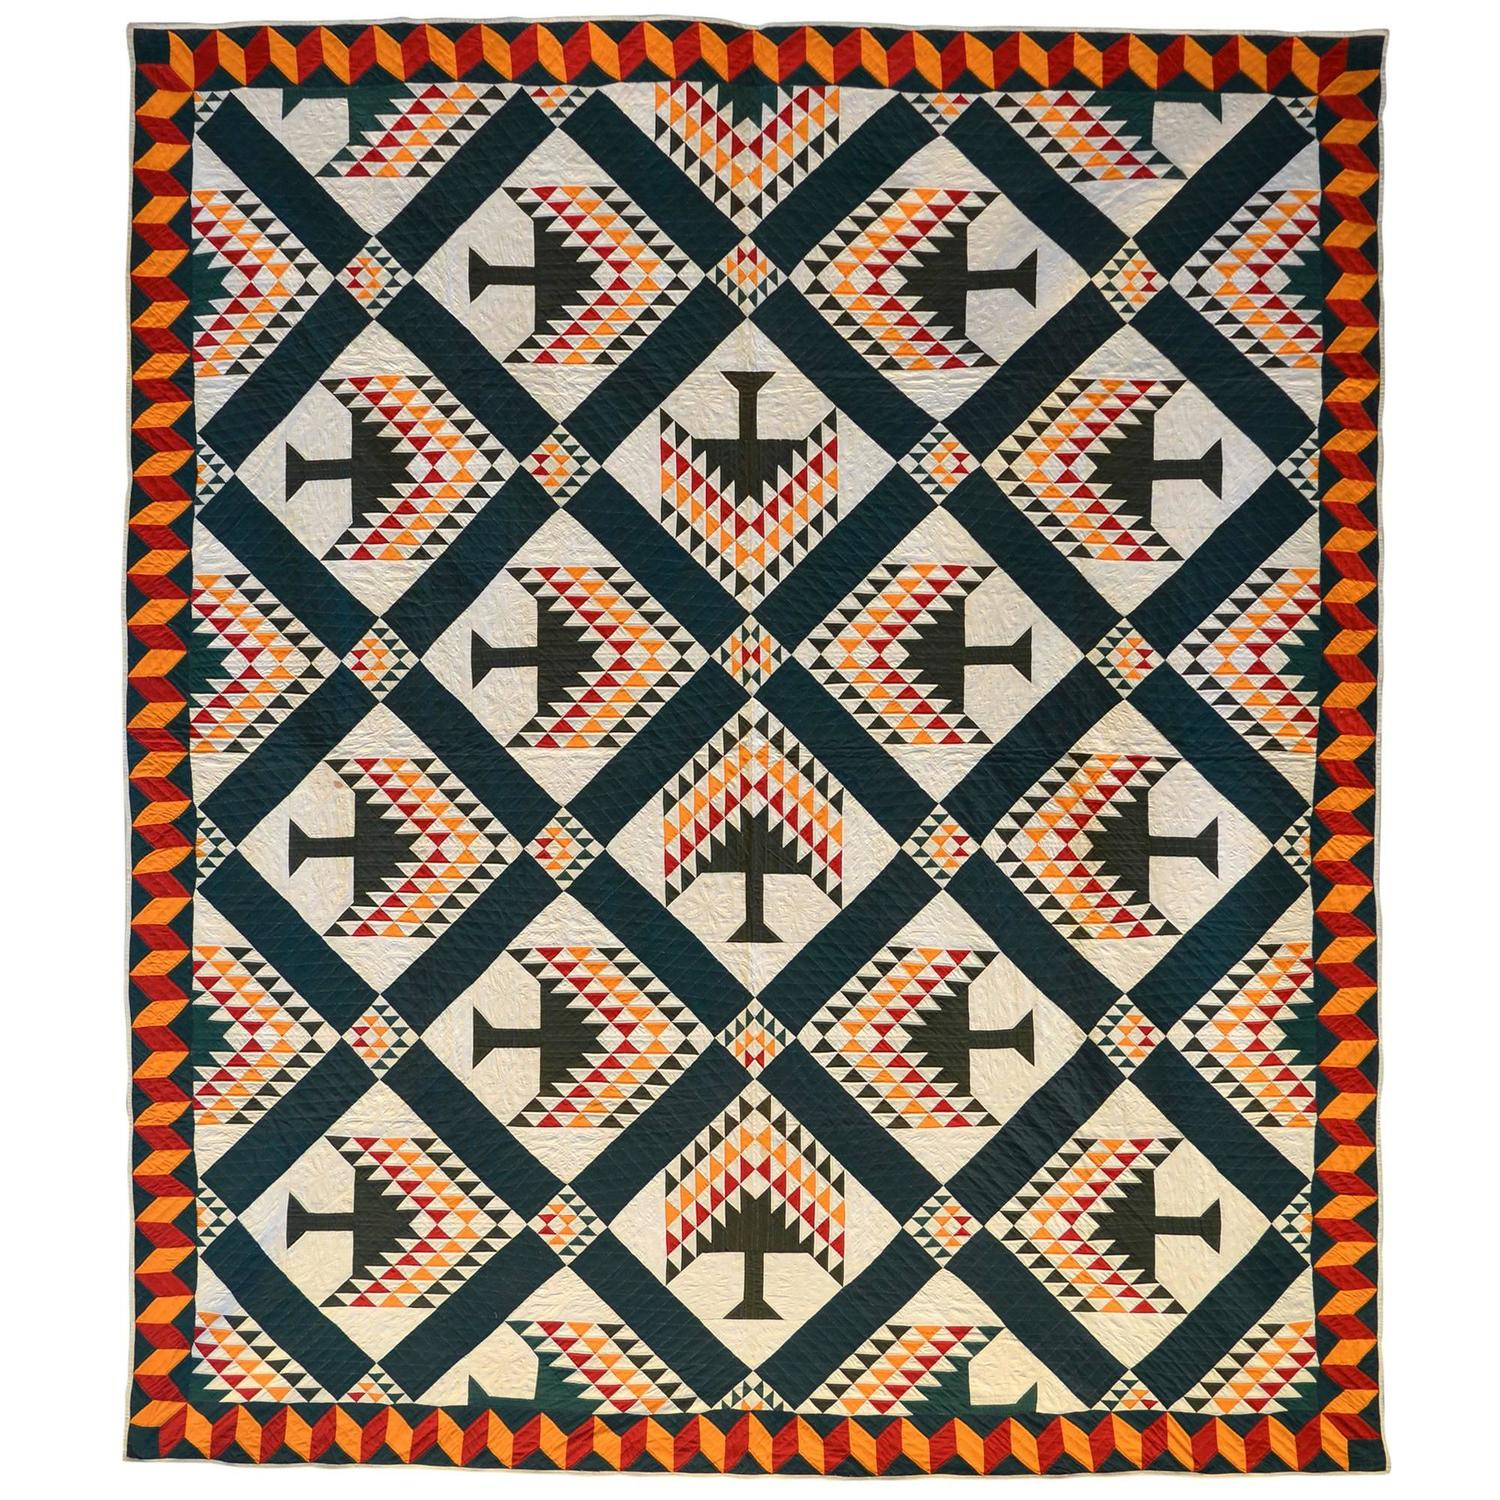 Tree Of Paradise Quilt At 1stdibs